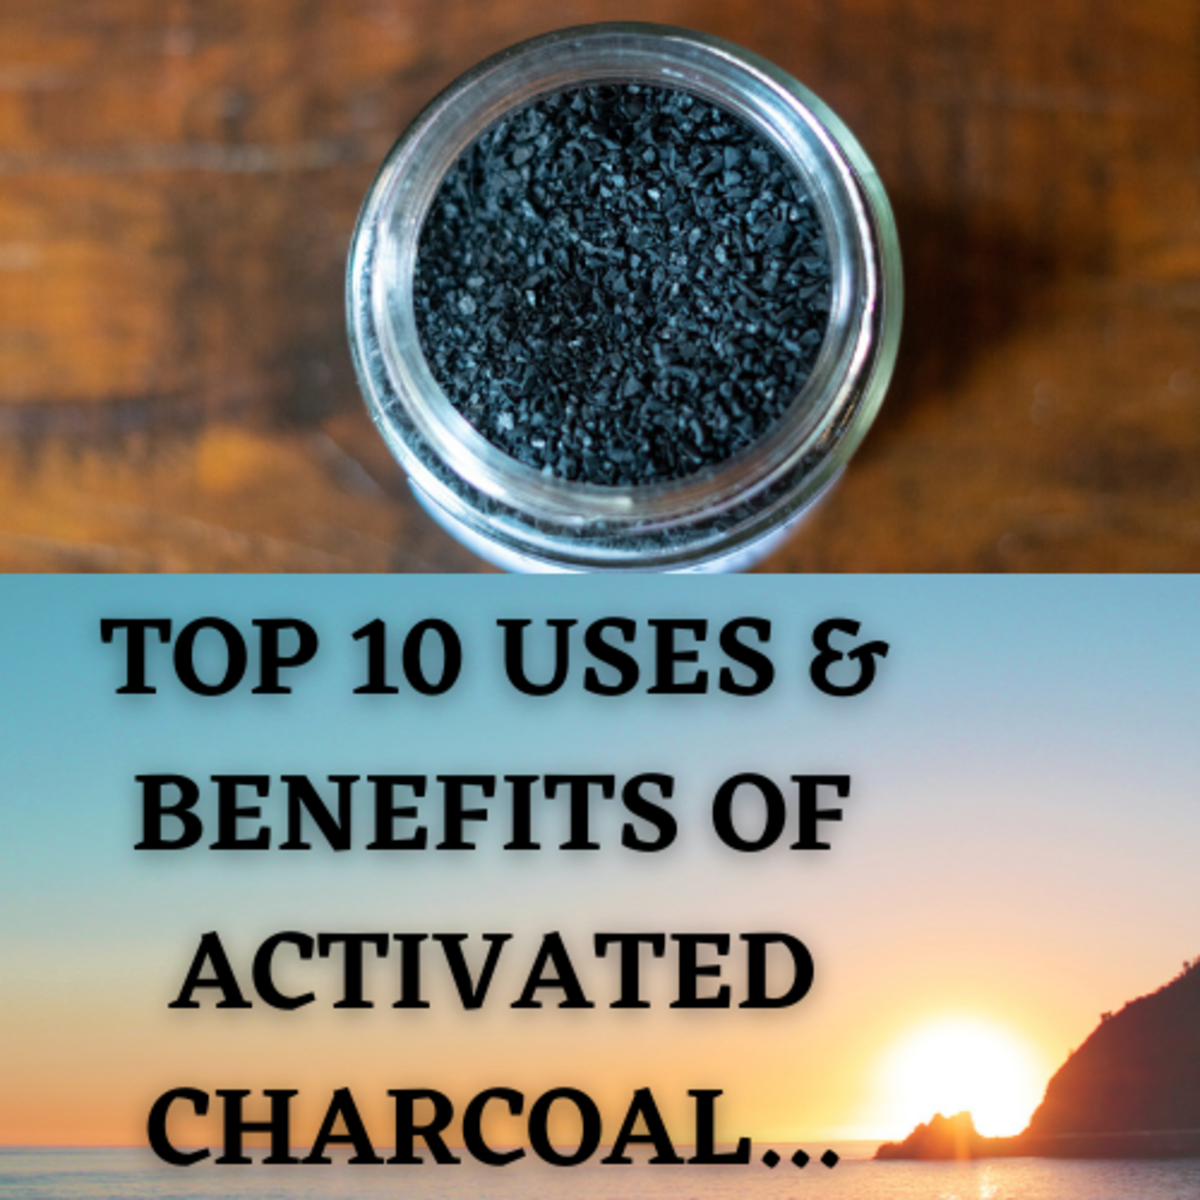 top-10-uses-and-benefits-of-activated-charcoal